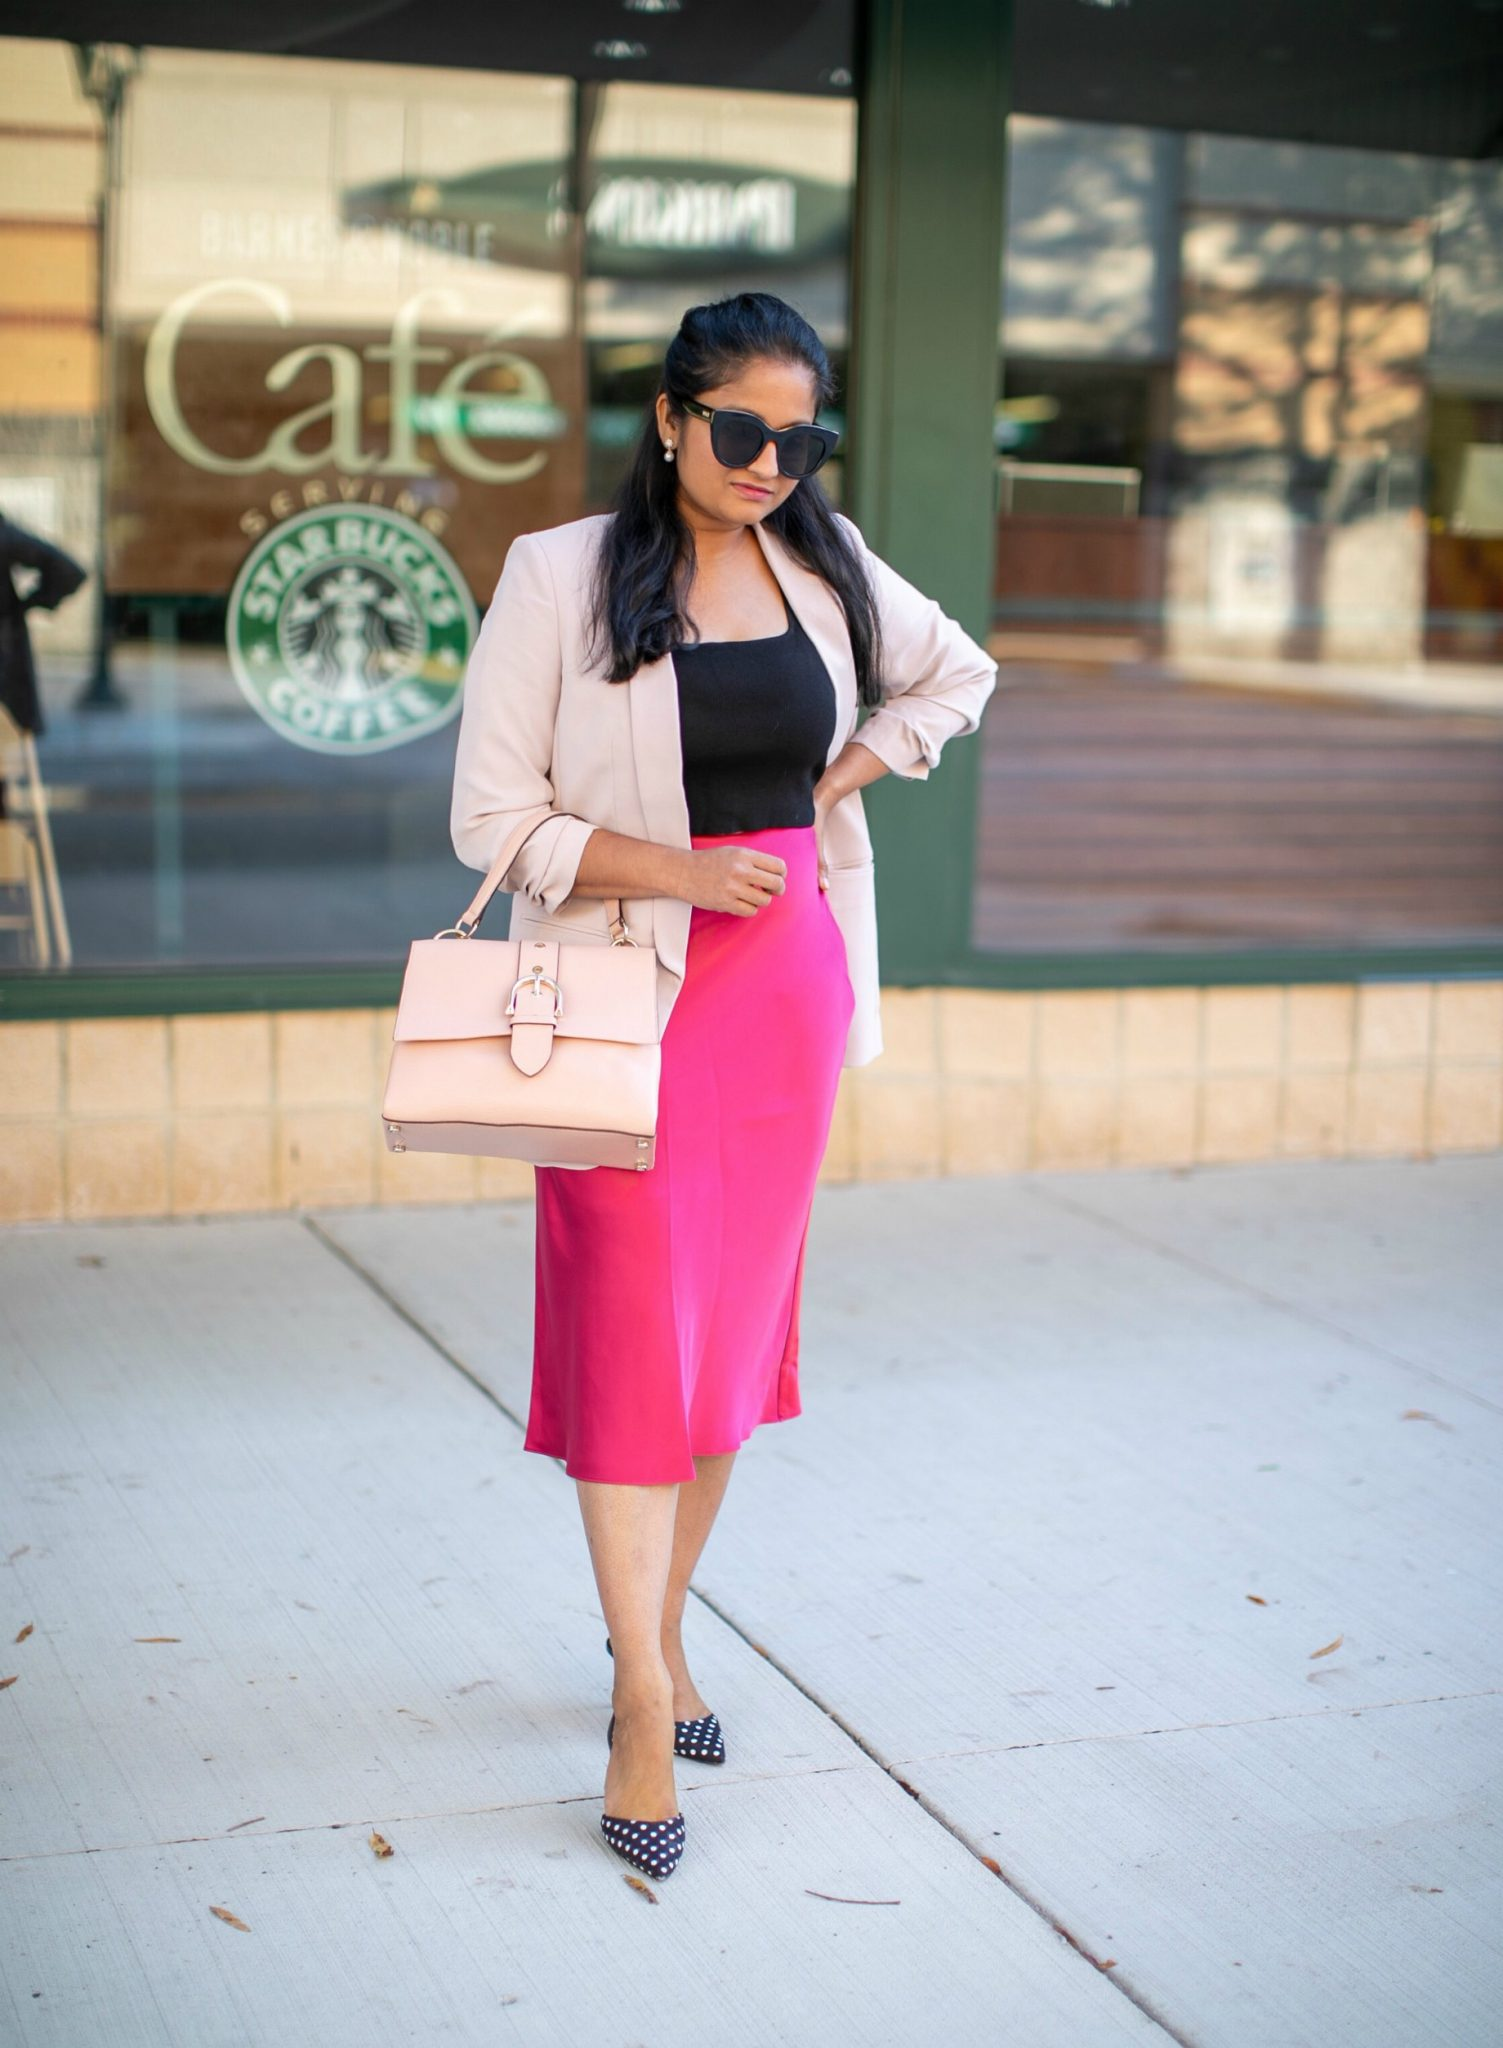 wearing Club monacp Trycia Satin Skirt in pink, express ruched sleeve boyfriend blazer in petal pink, polka dot pumps, pink stachel